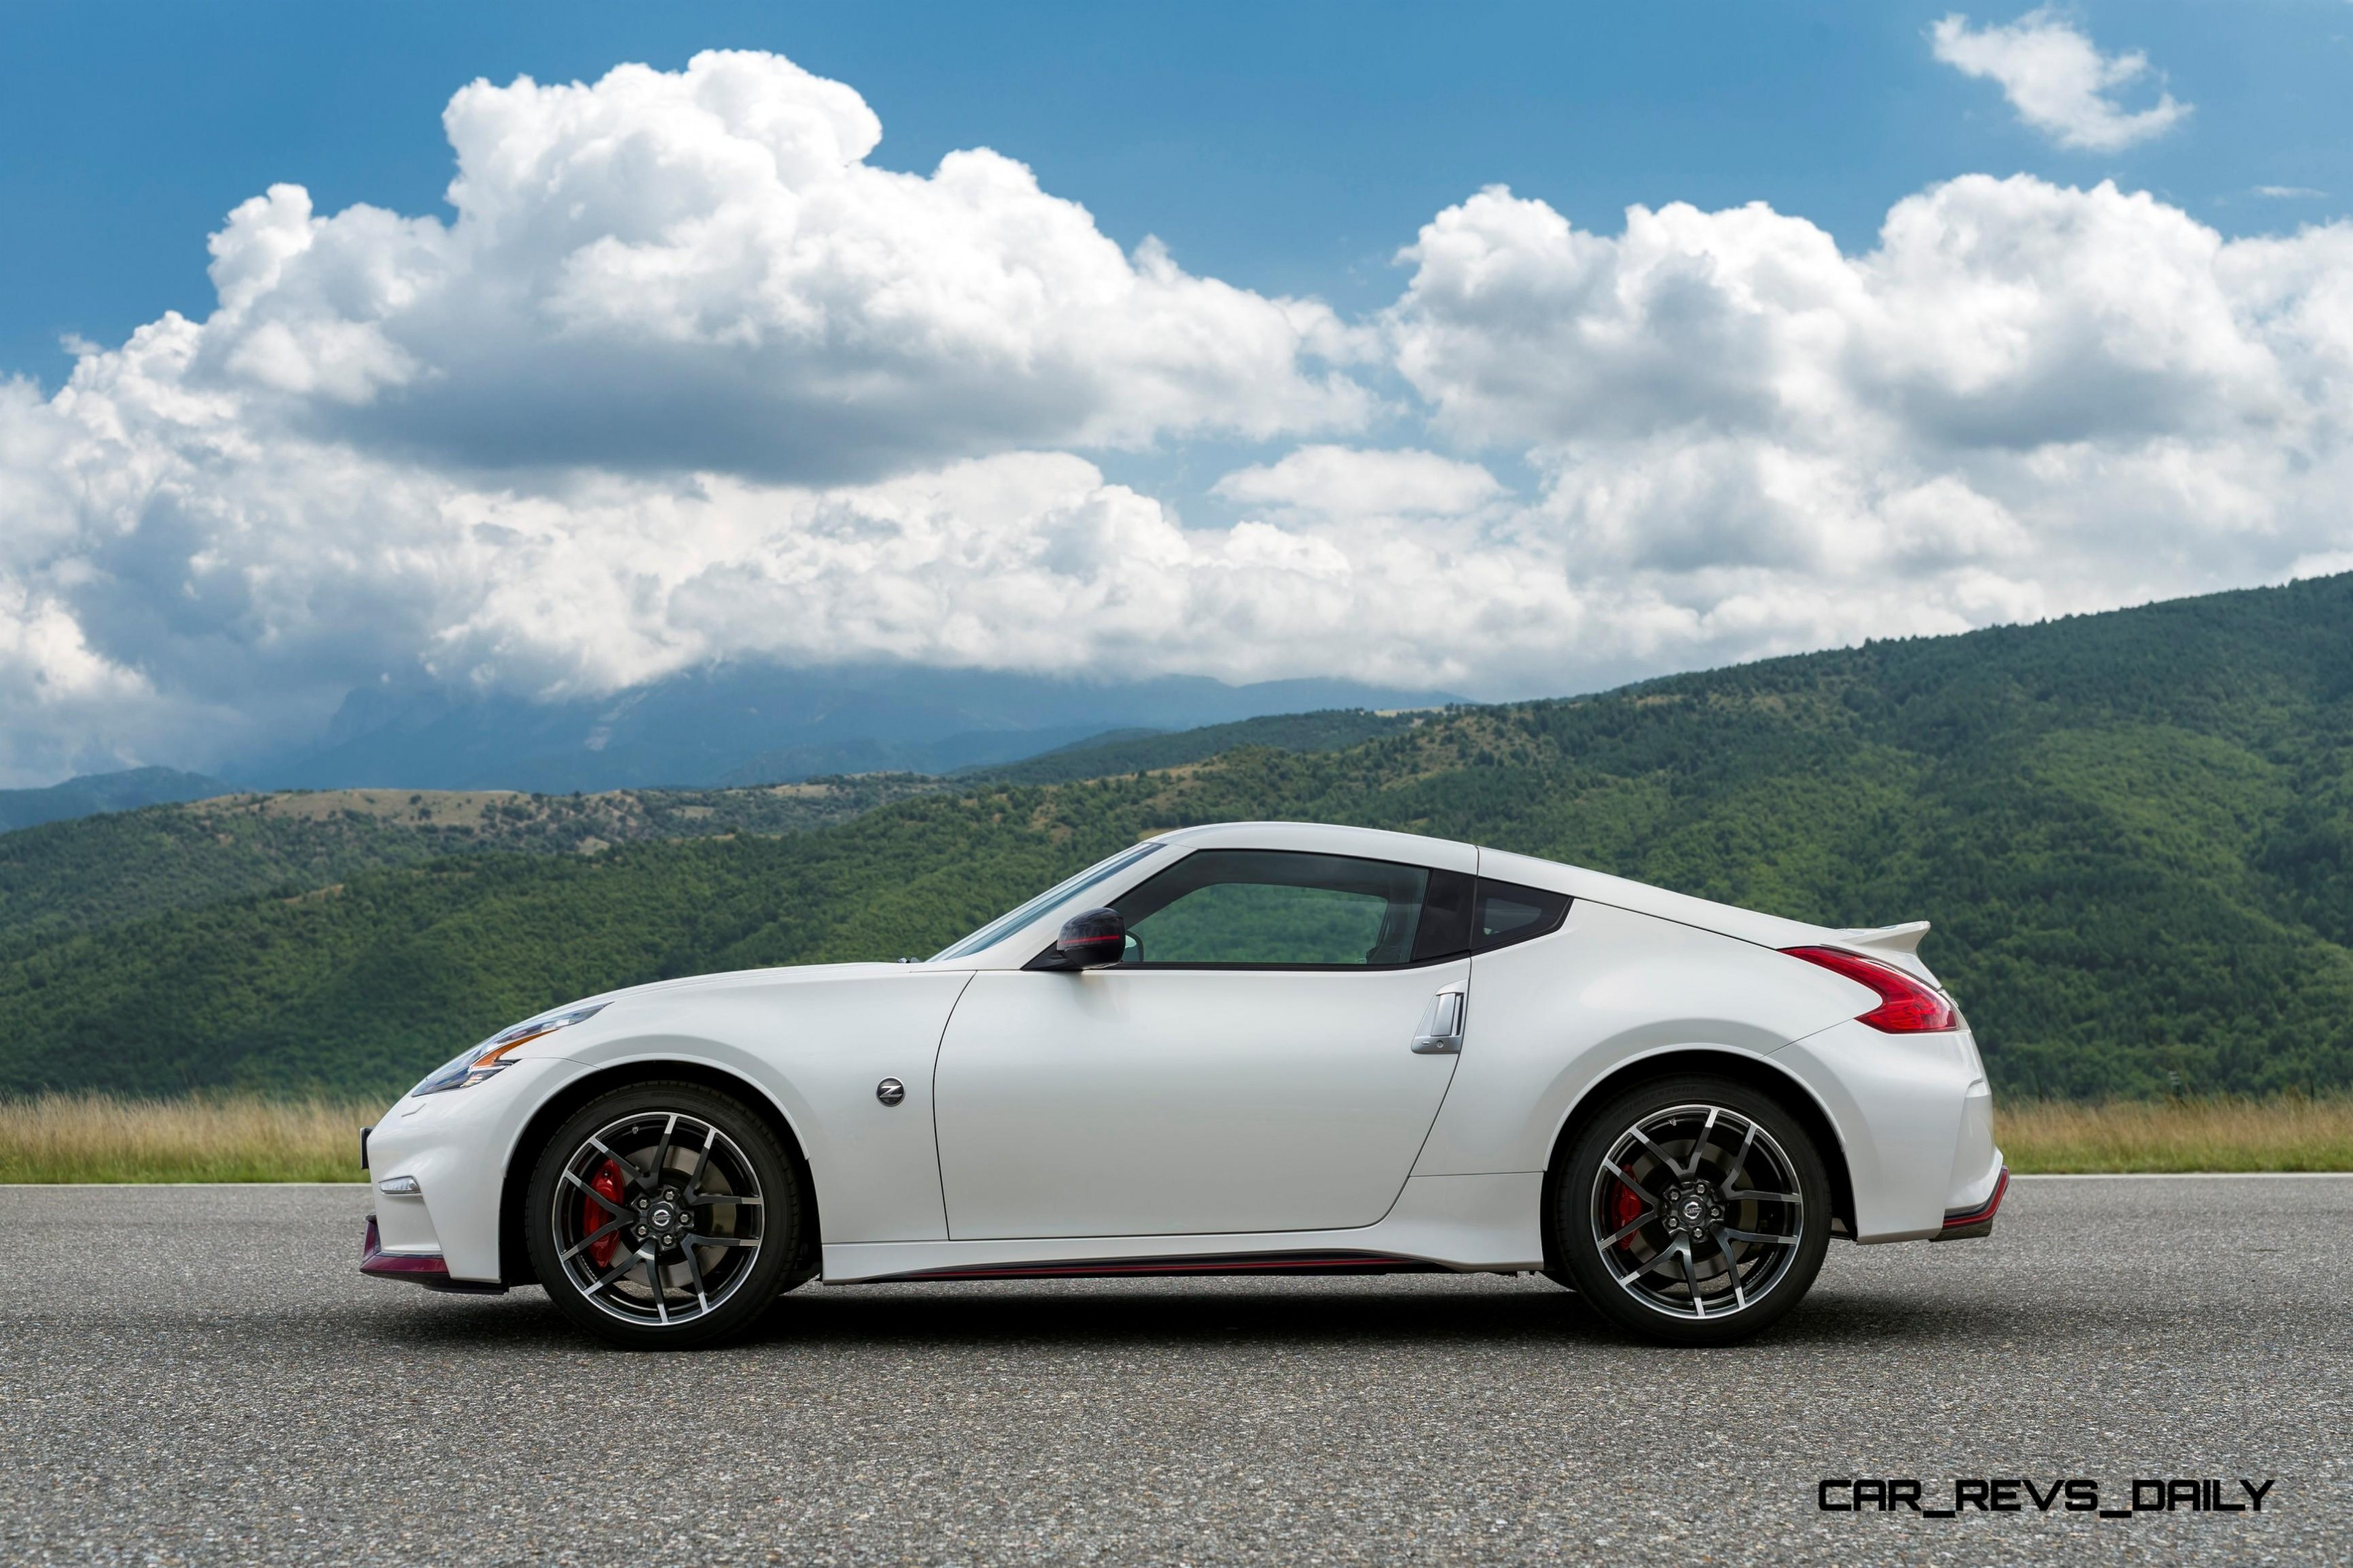 Update2 New Photos! 2015 Nissan 370Z NISMO Facelift